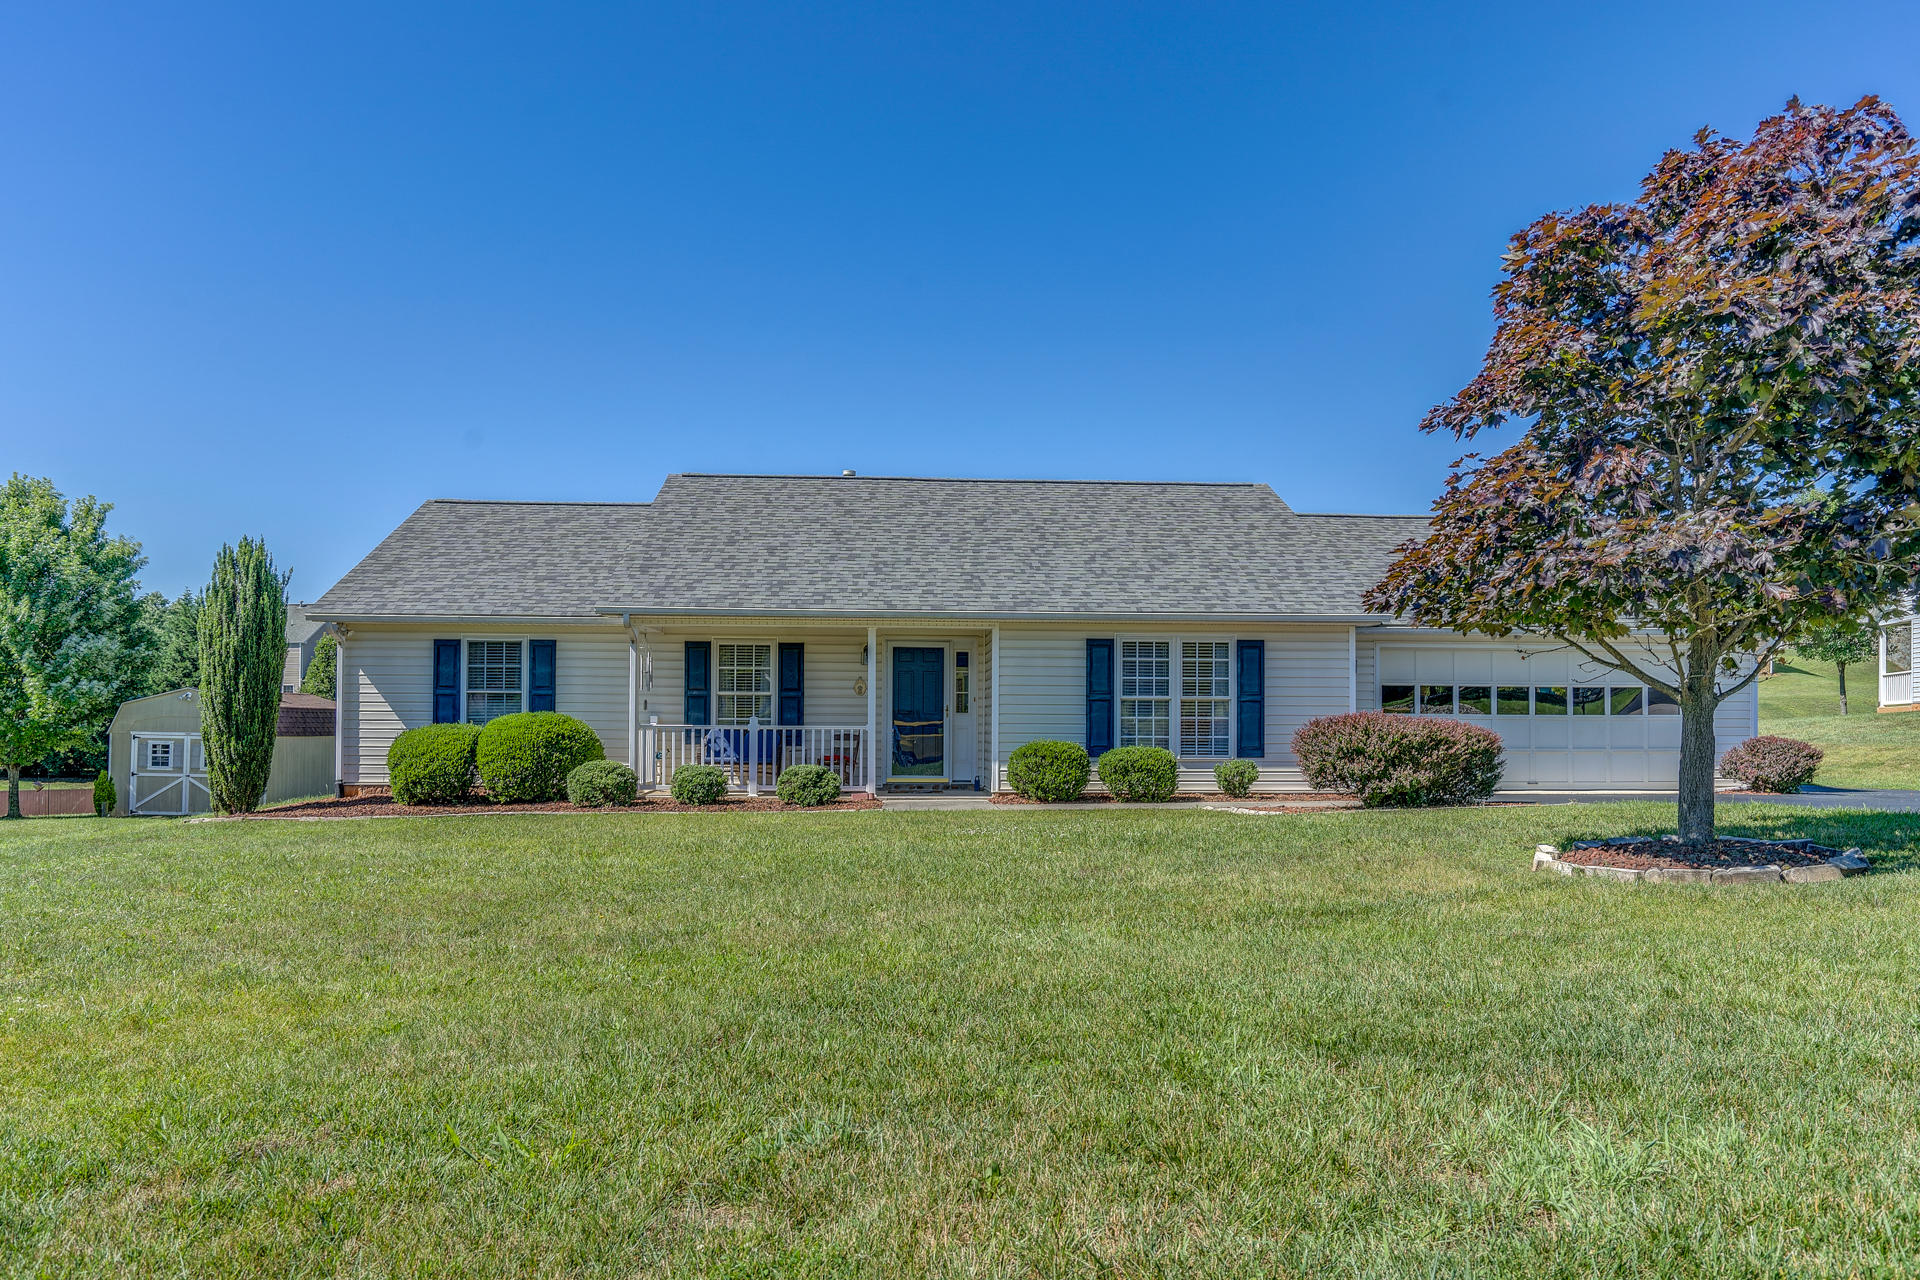 Residential for Sale at 6004 Farmhouse Ln Roanoke, Virginia 24019 United States